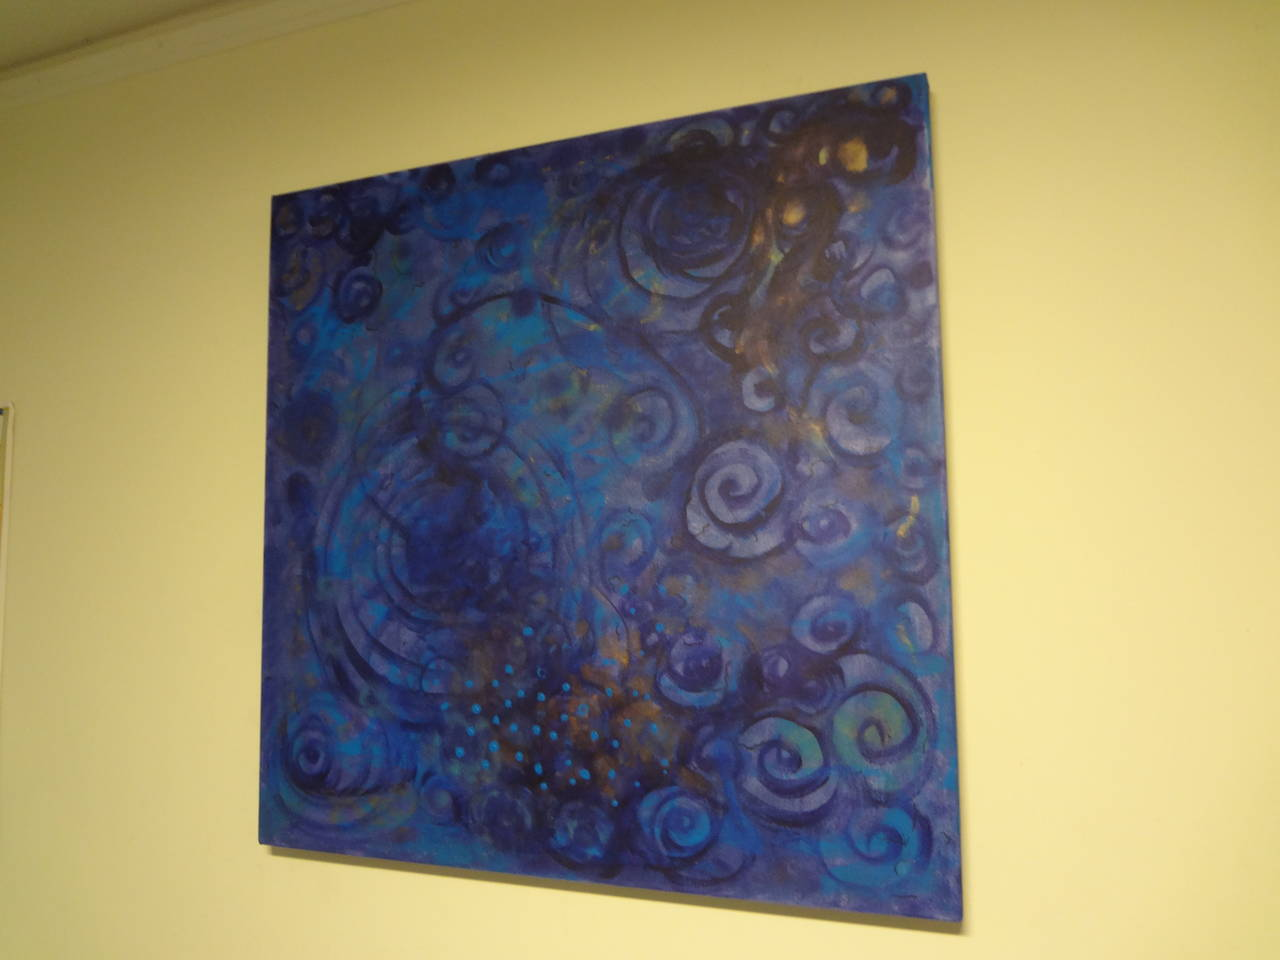 American Abstract Acrylic on Canvas by Javier Barrionuevo For Sale